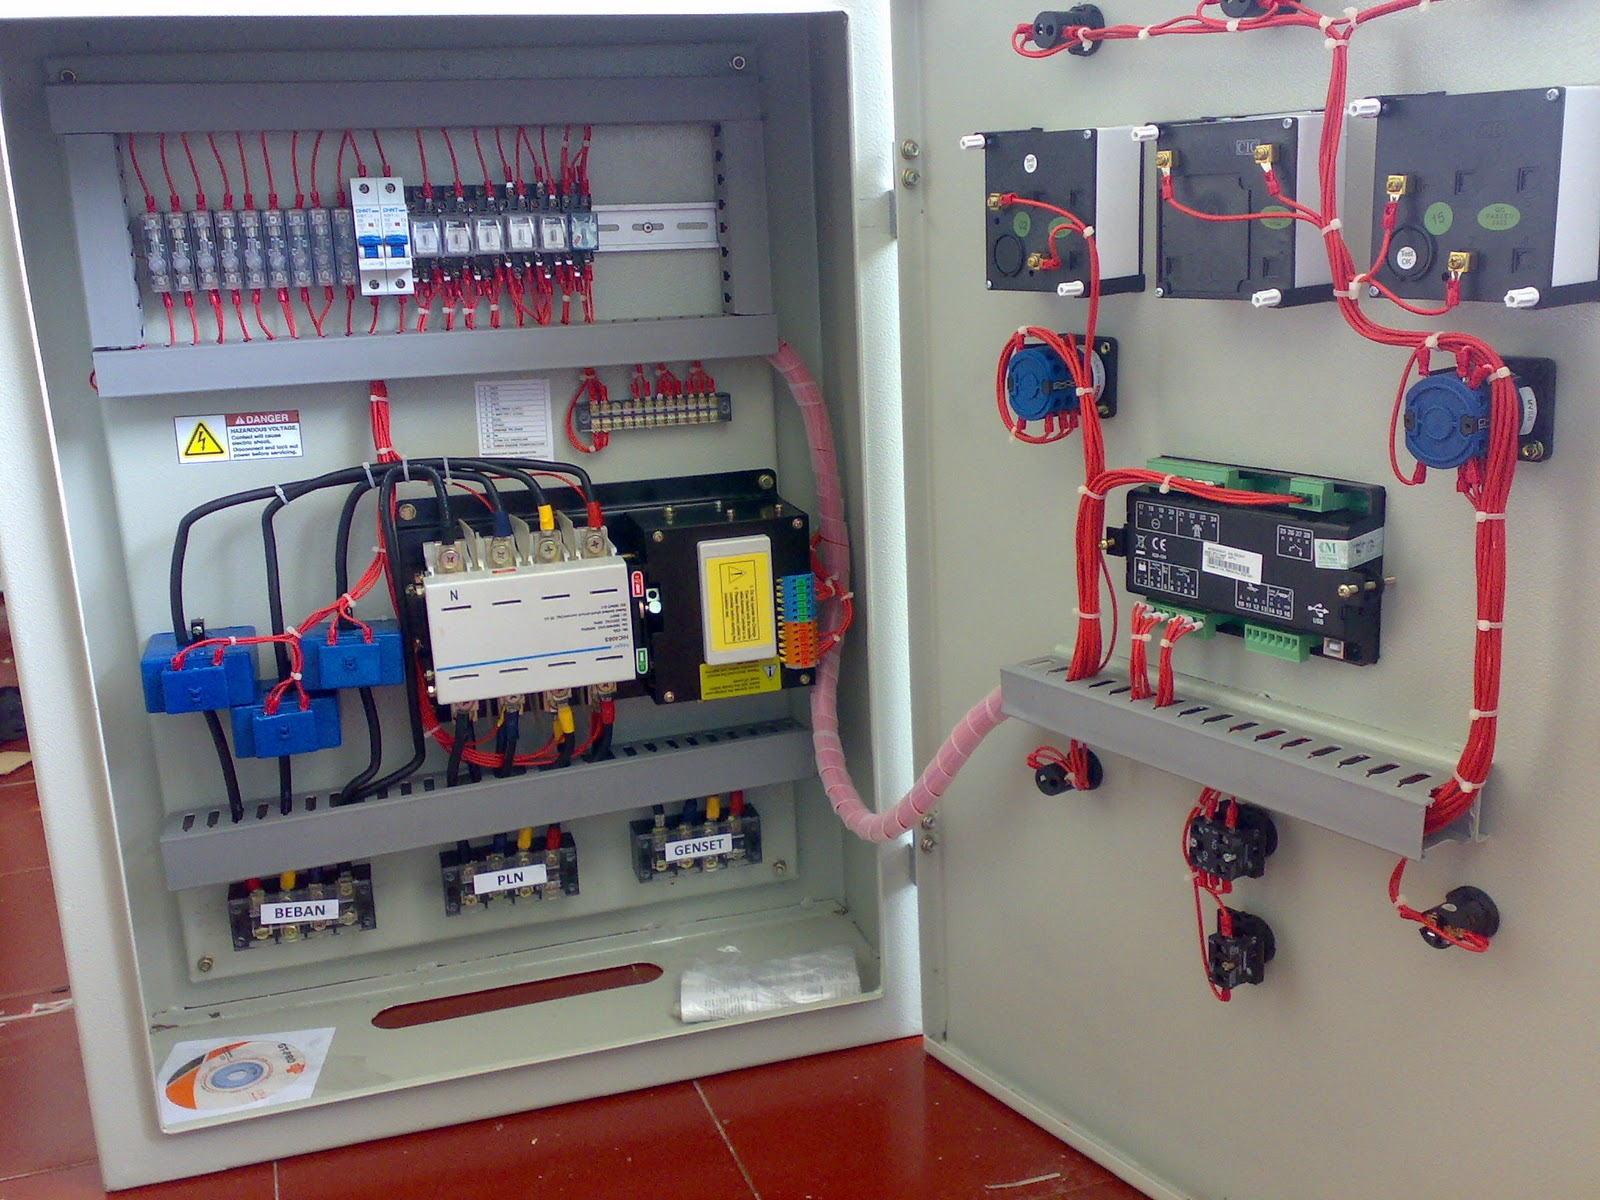 hight resolution of amf panel wiring diagram pdf wiring library main service panel wiring diagram wiring diagram panel amf